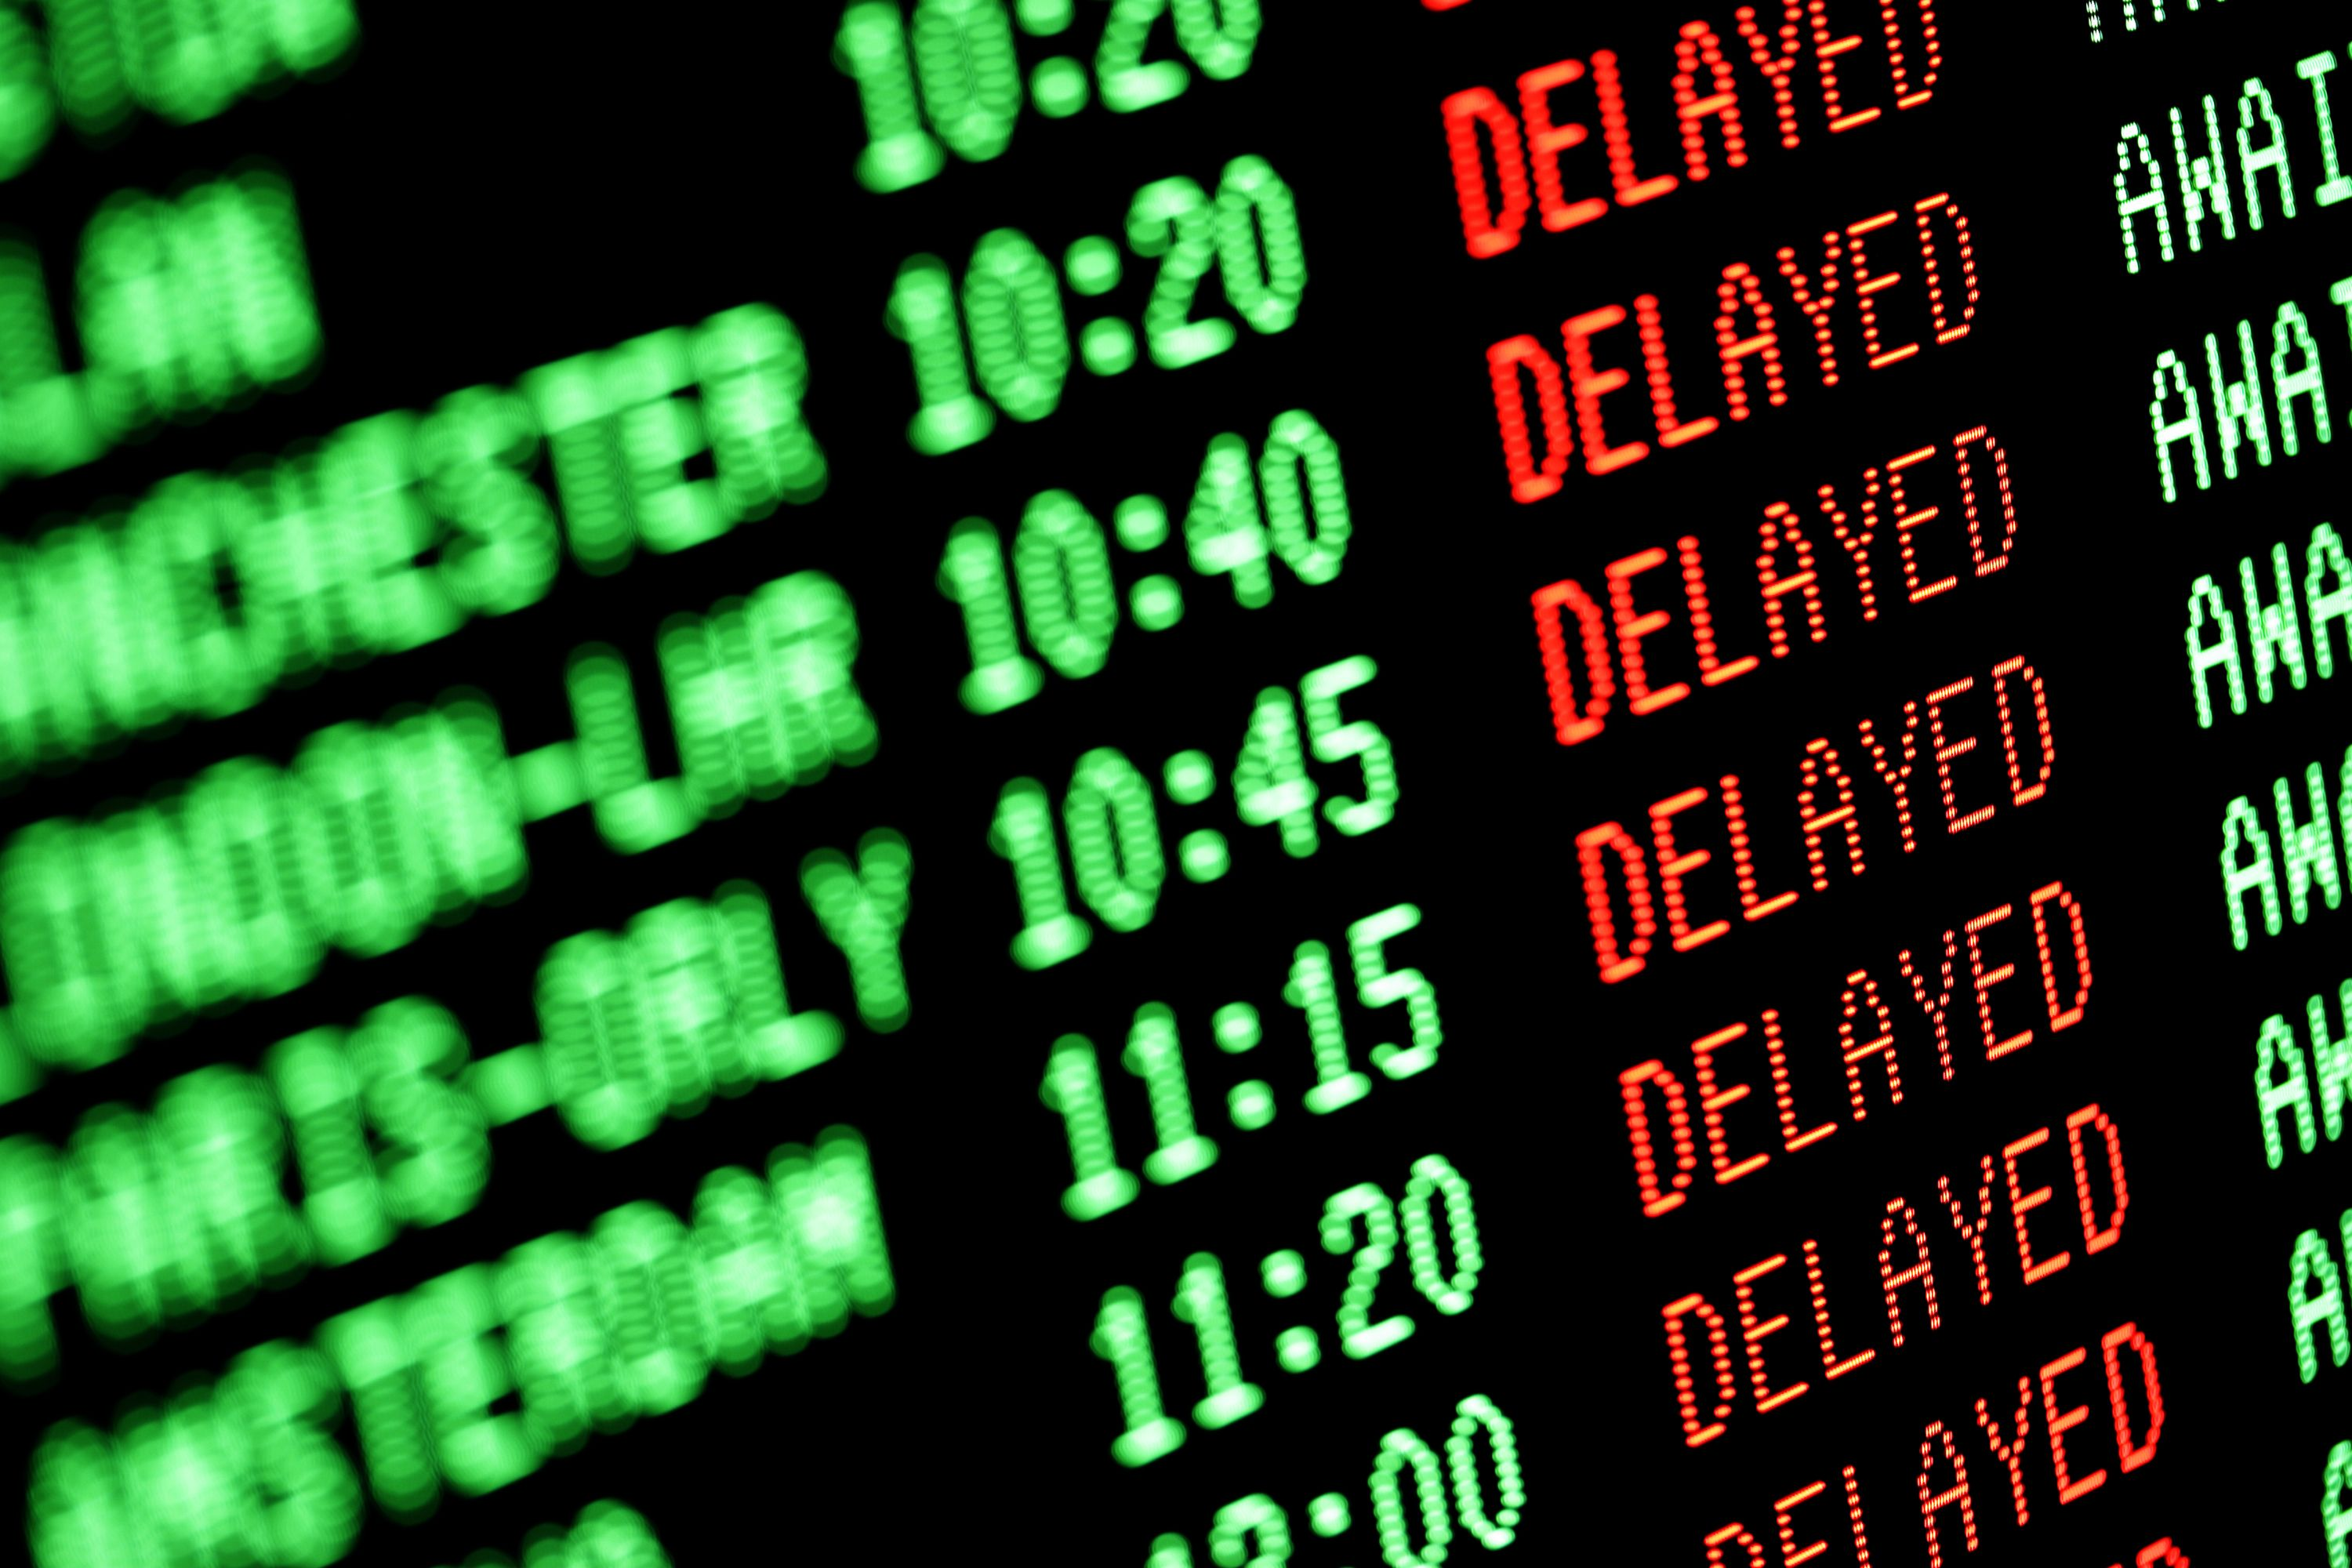 How to claim compensation if strikes affect your flights